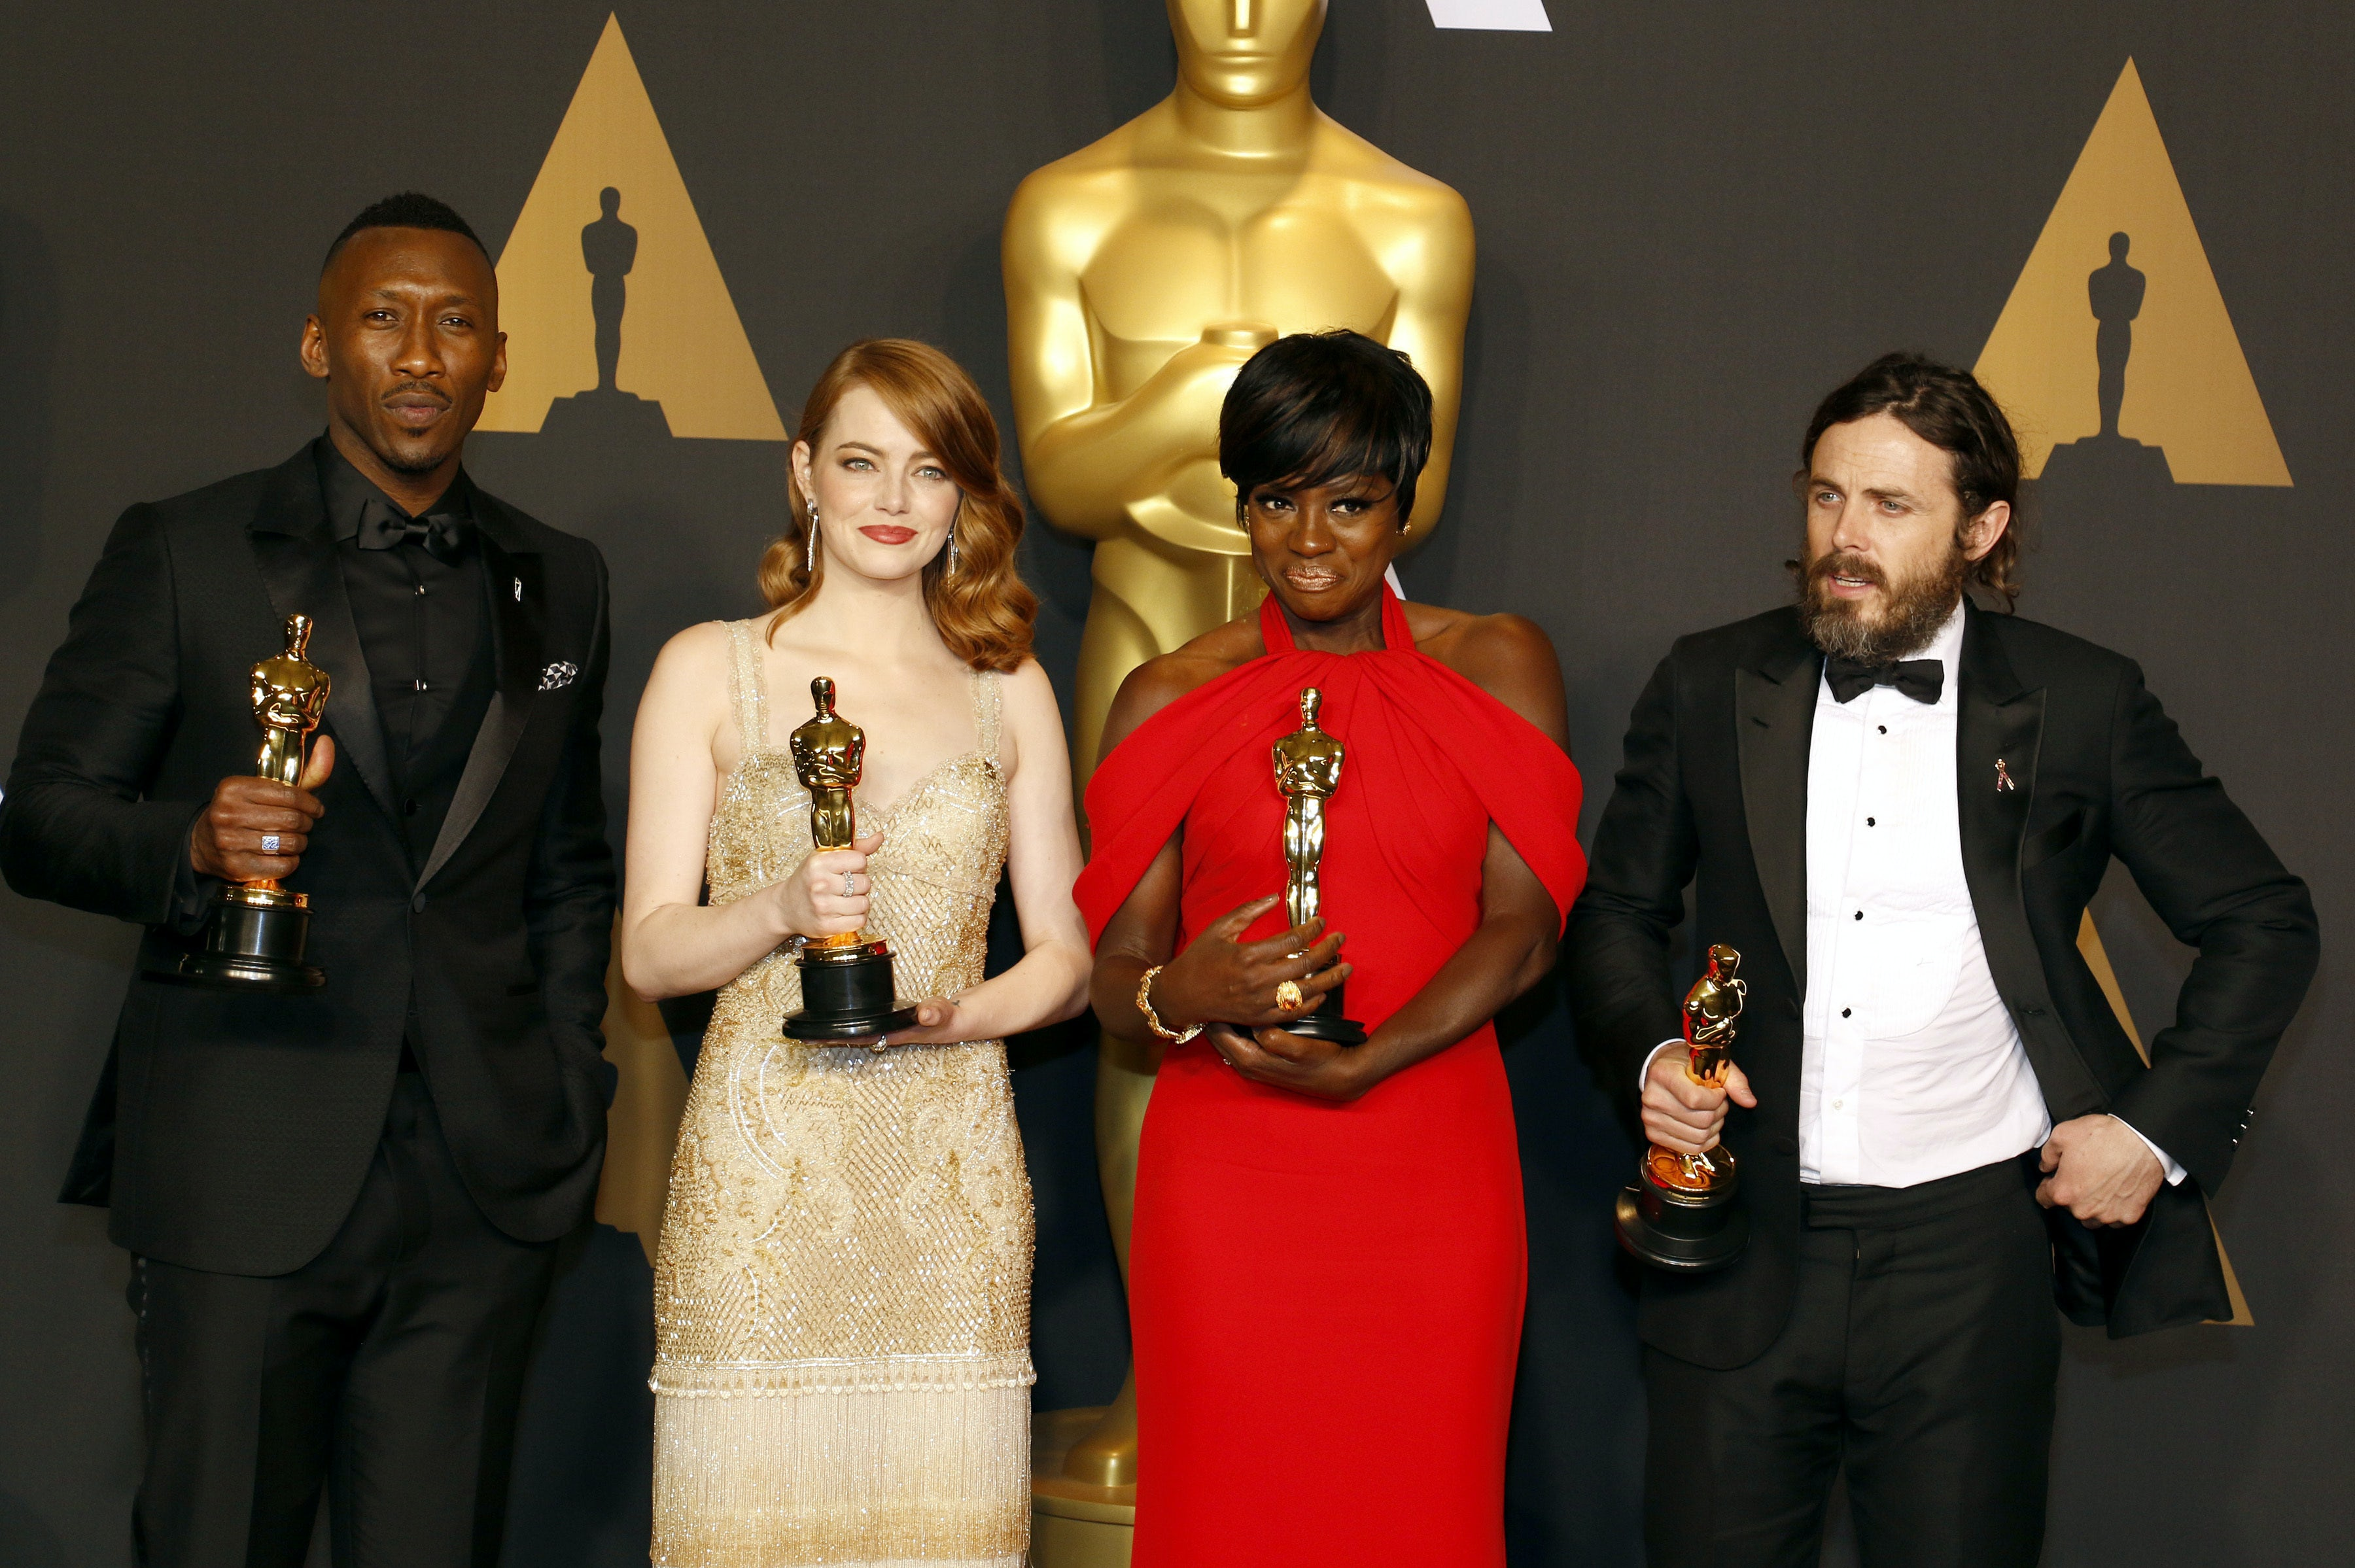 Oscar winners Mahershala Ali, Emma Stone, Viola Davis and Casey Affleck at the 89th Annual Academy Awards  | Source: Shutterstock